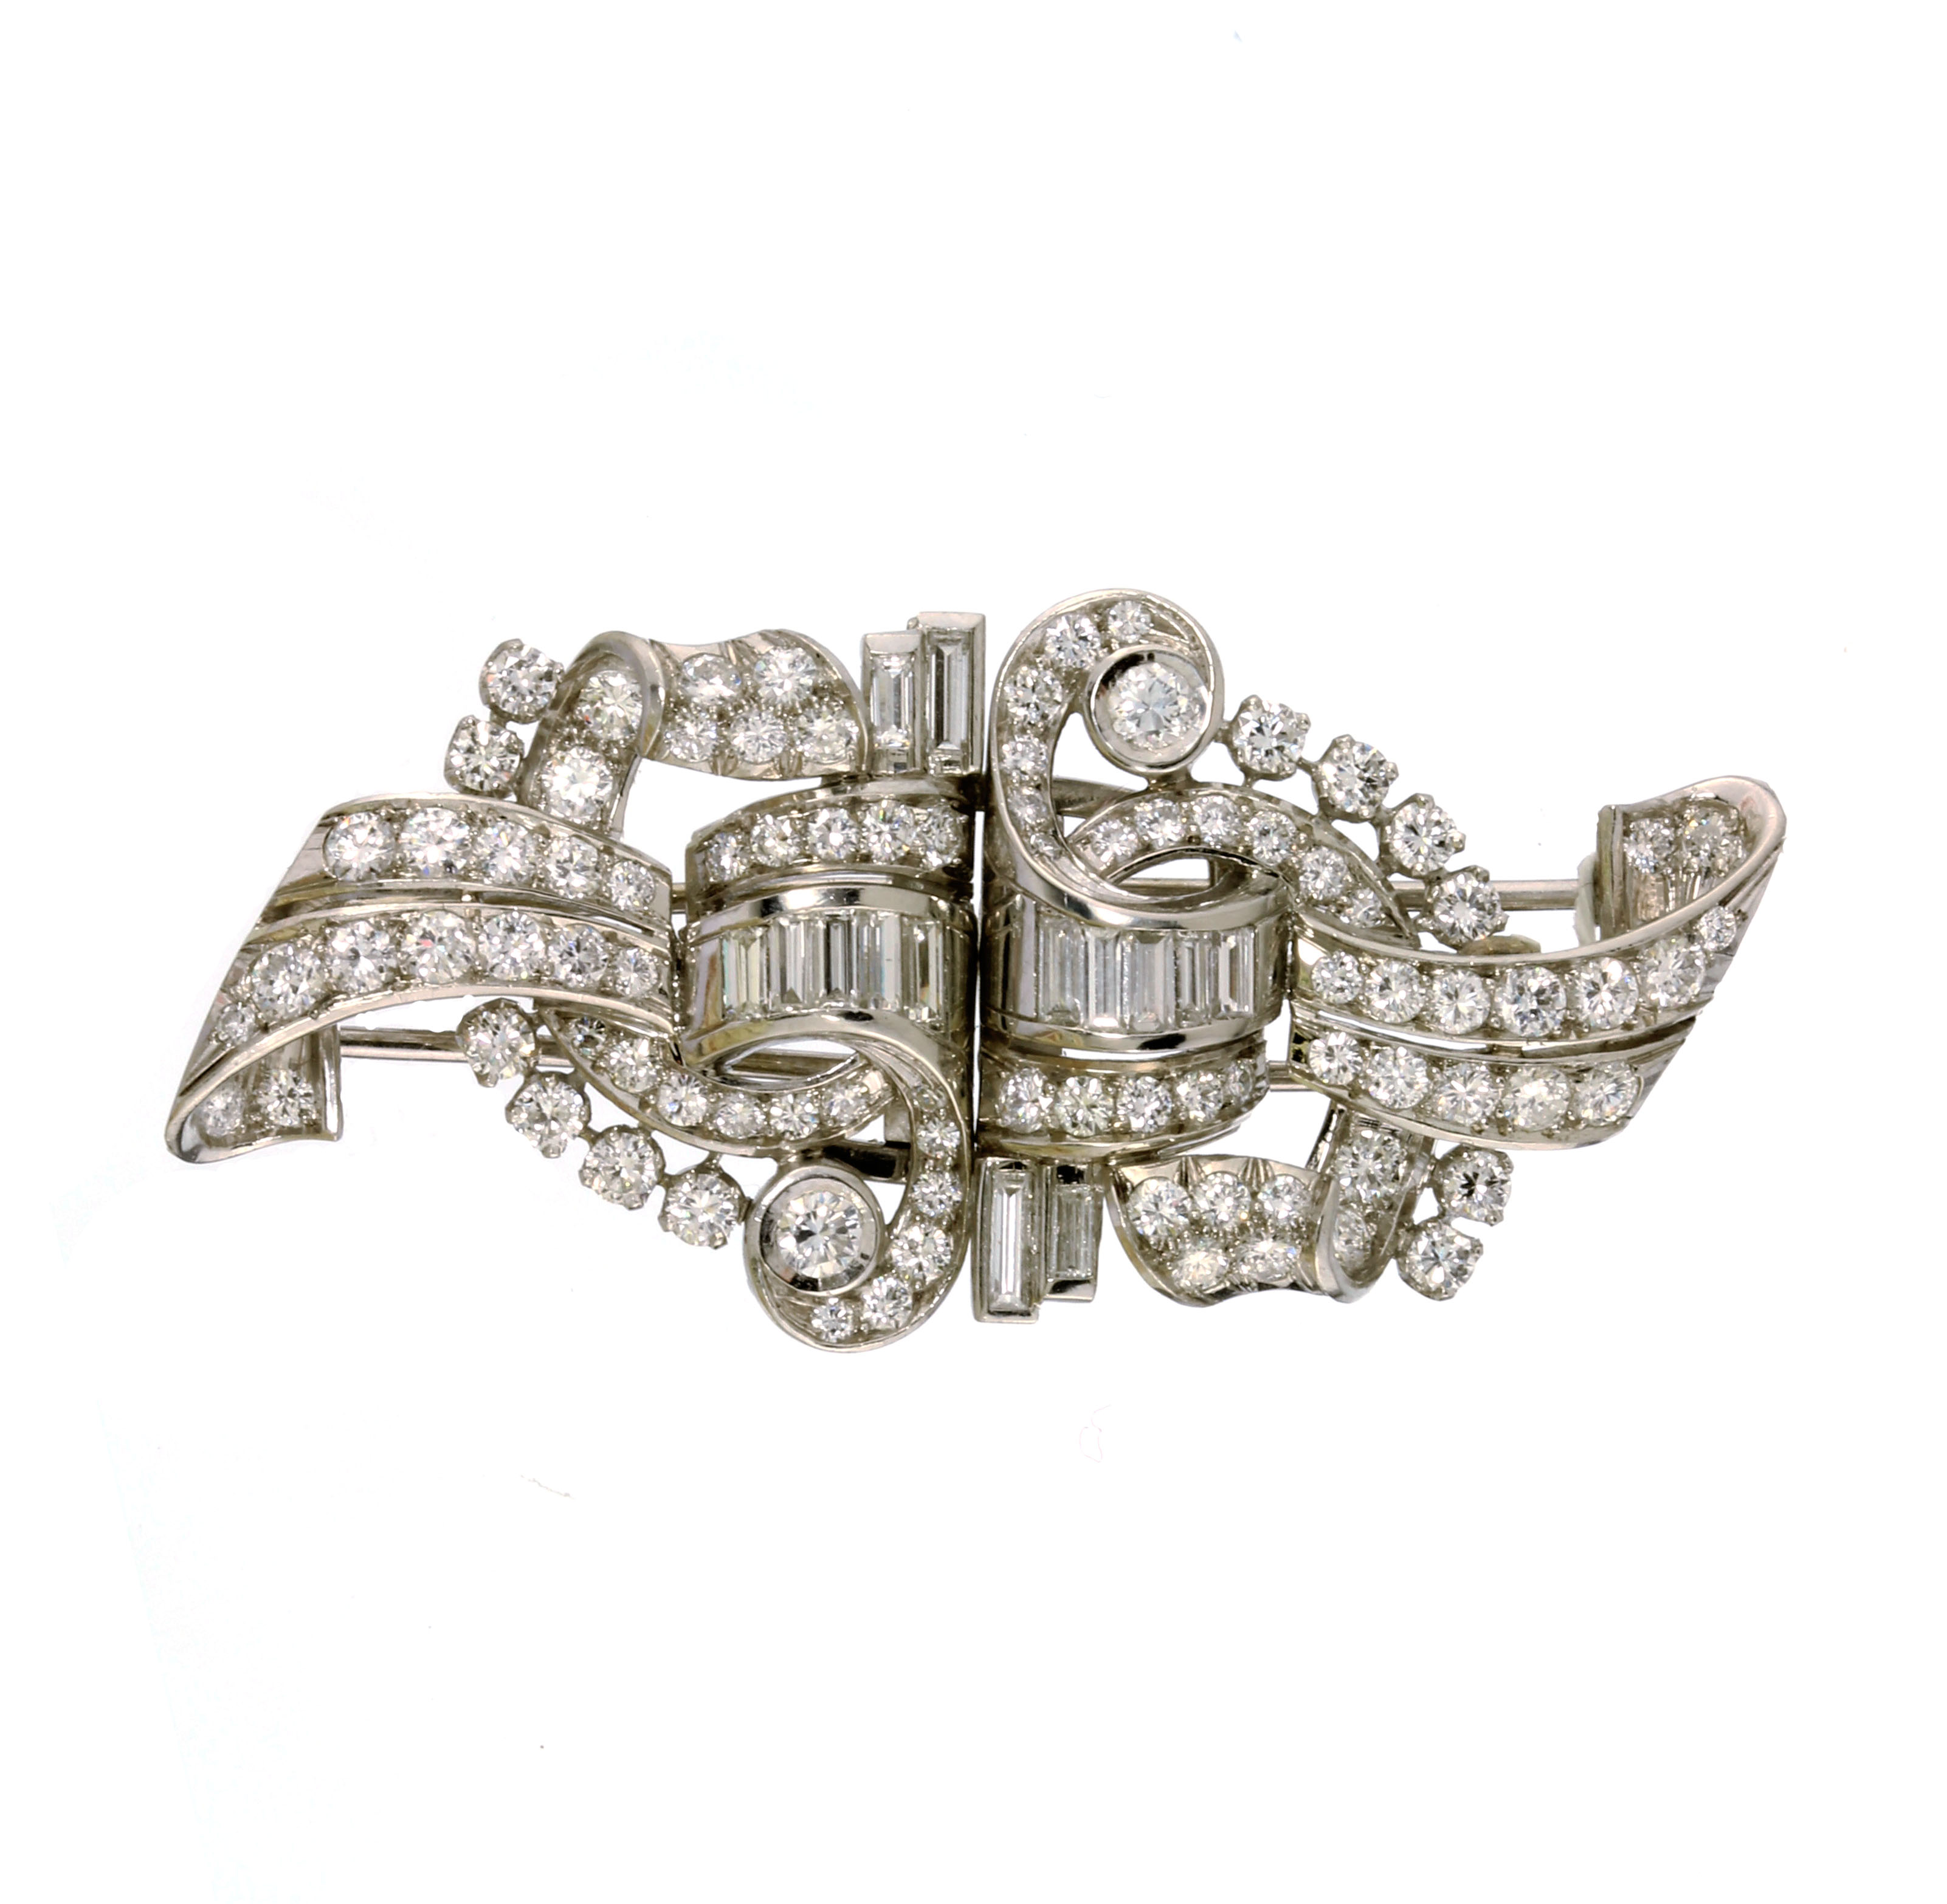 Los 26 - AN ANTIQUE DIAMOND DOUBLE CLIP BROOCH in platinum or white gold, designed as interlocking